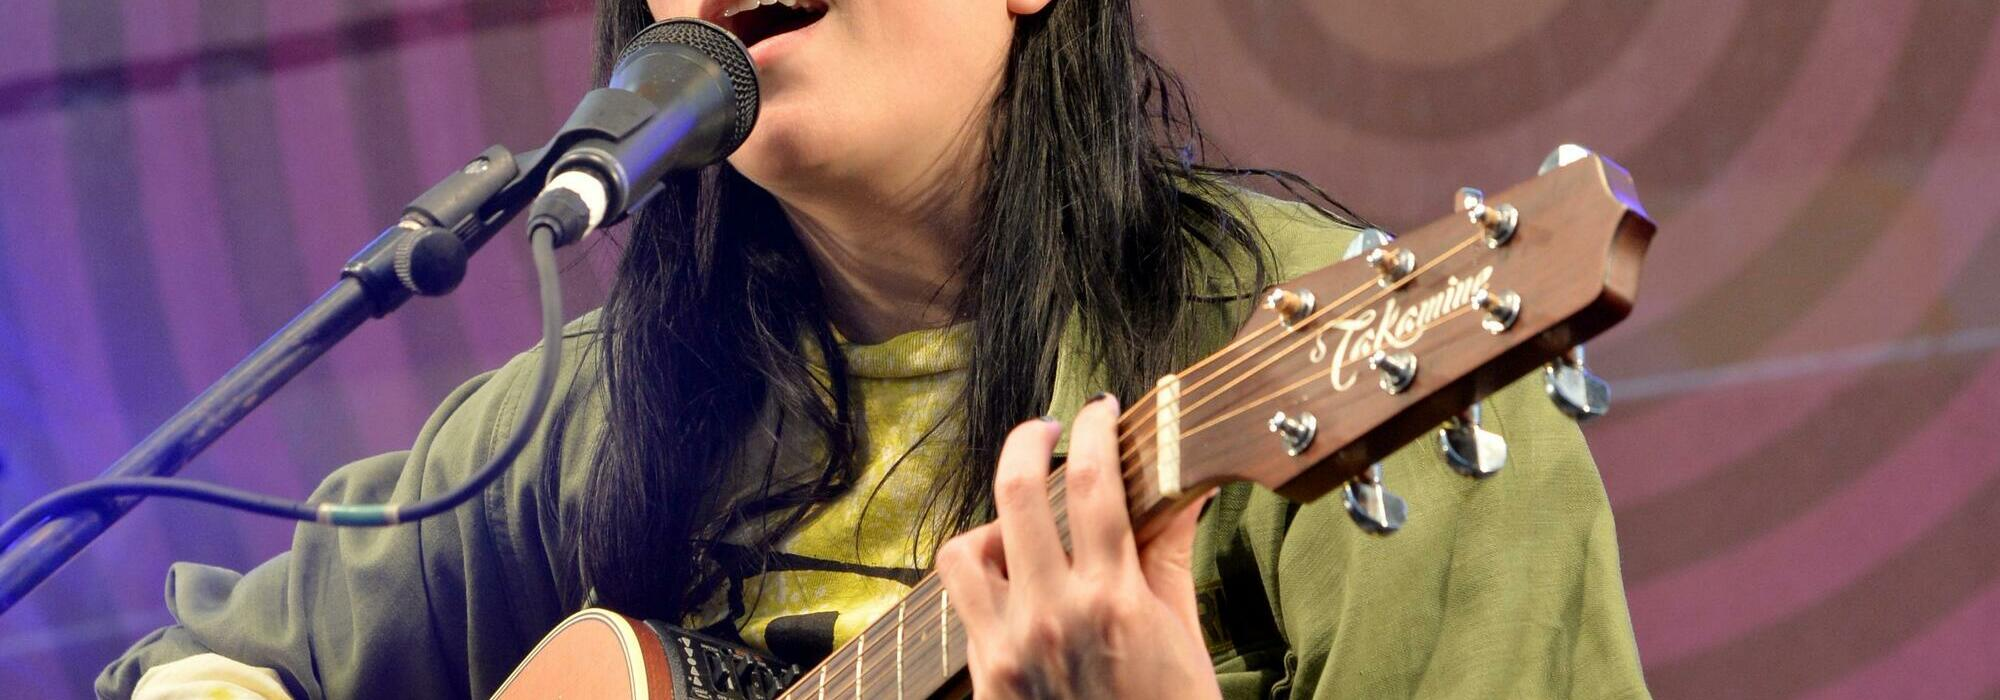 A K.Flay live event